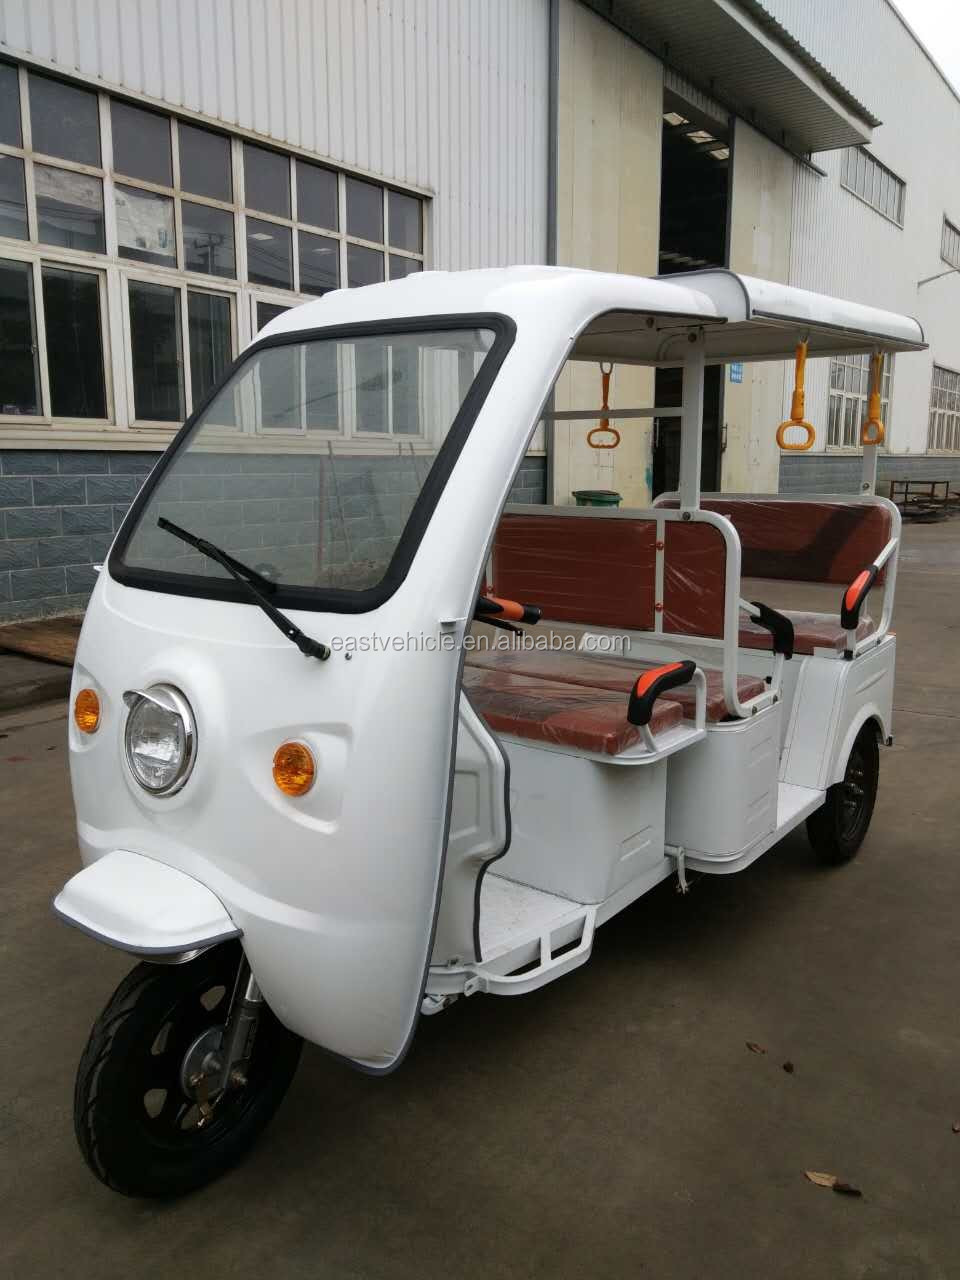 Electric Scooter 1000w Three Wheel Motorcycle Taxi For Sale